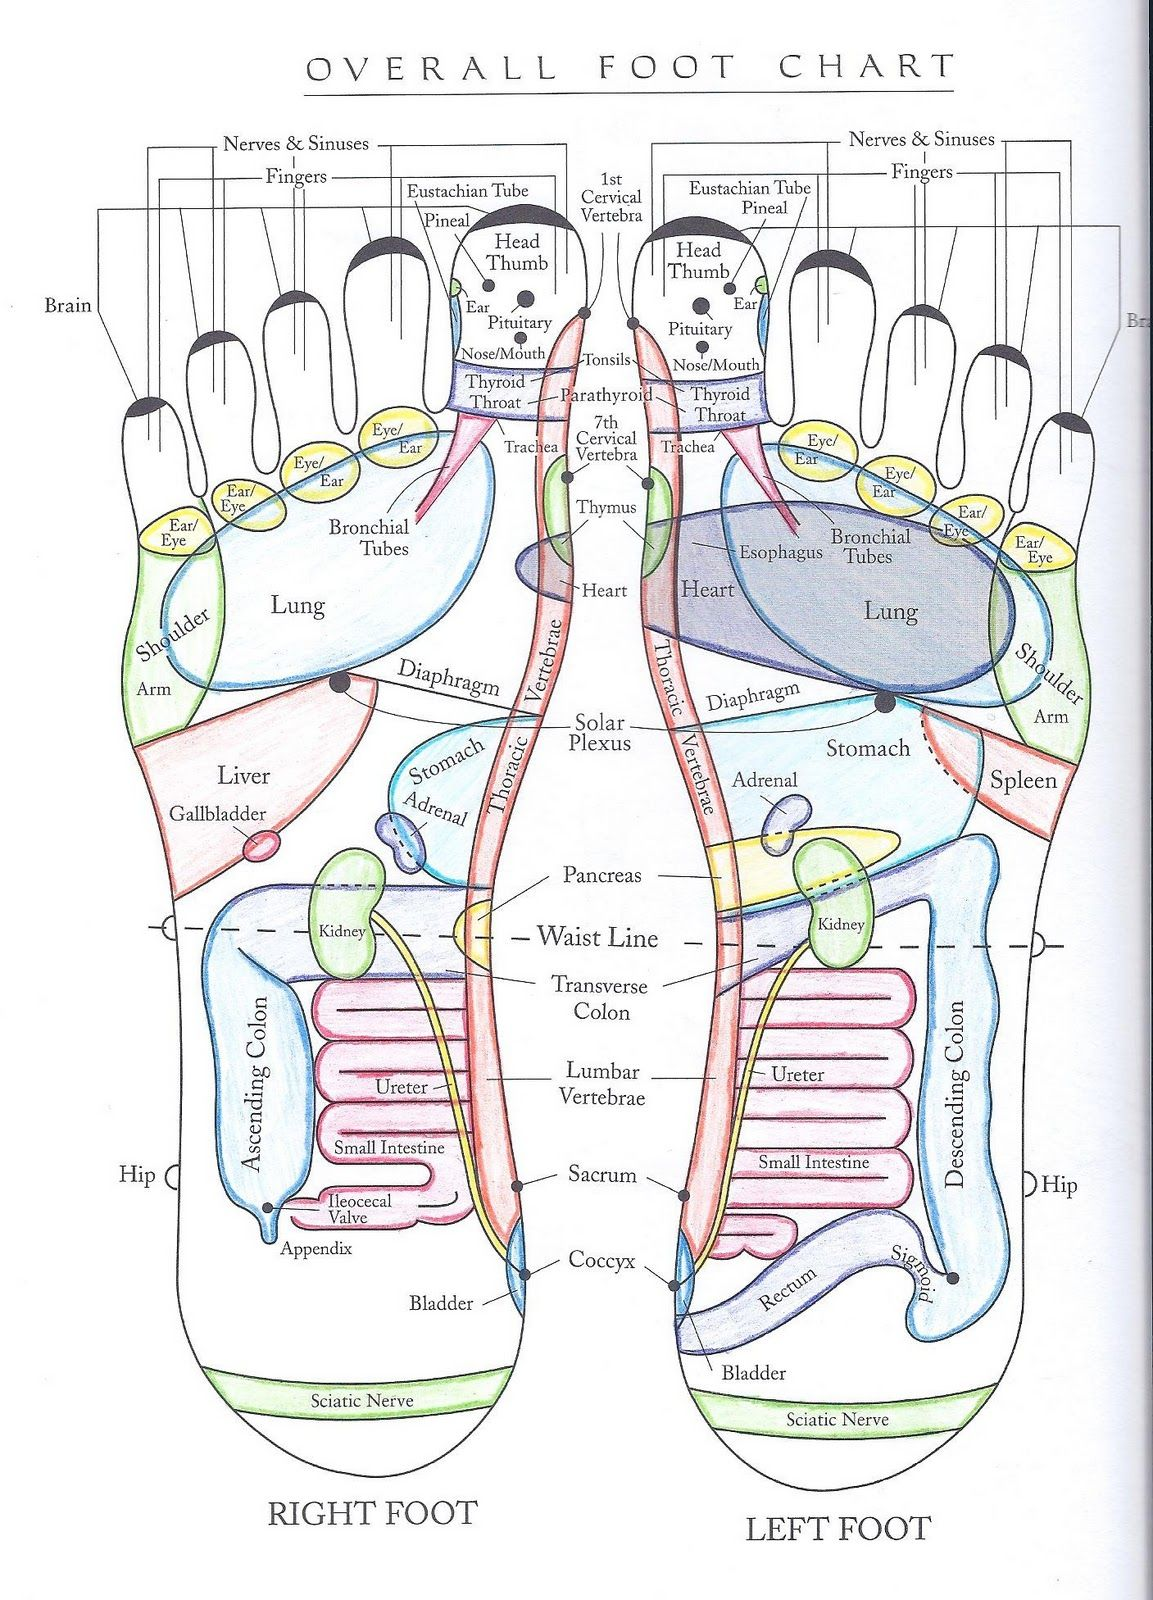 Erin hanson licensed massage therapist an introduction to foot overall foot chart vita flex pooptronica